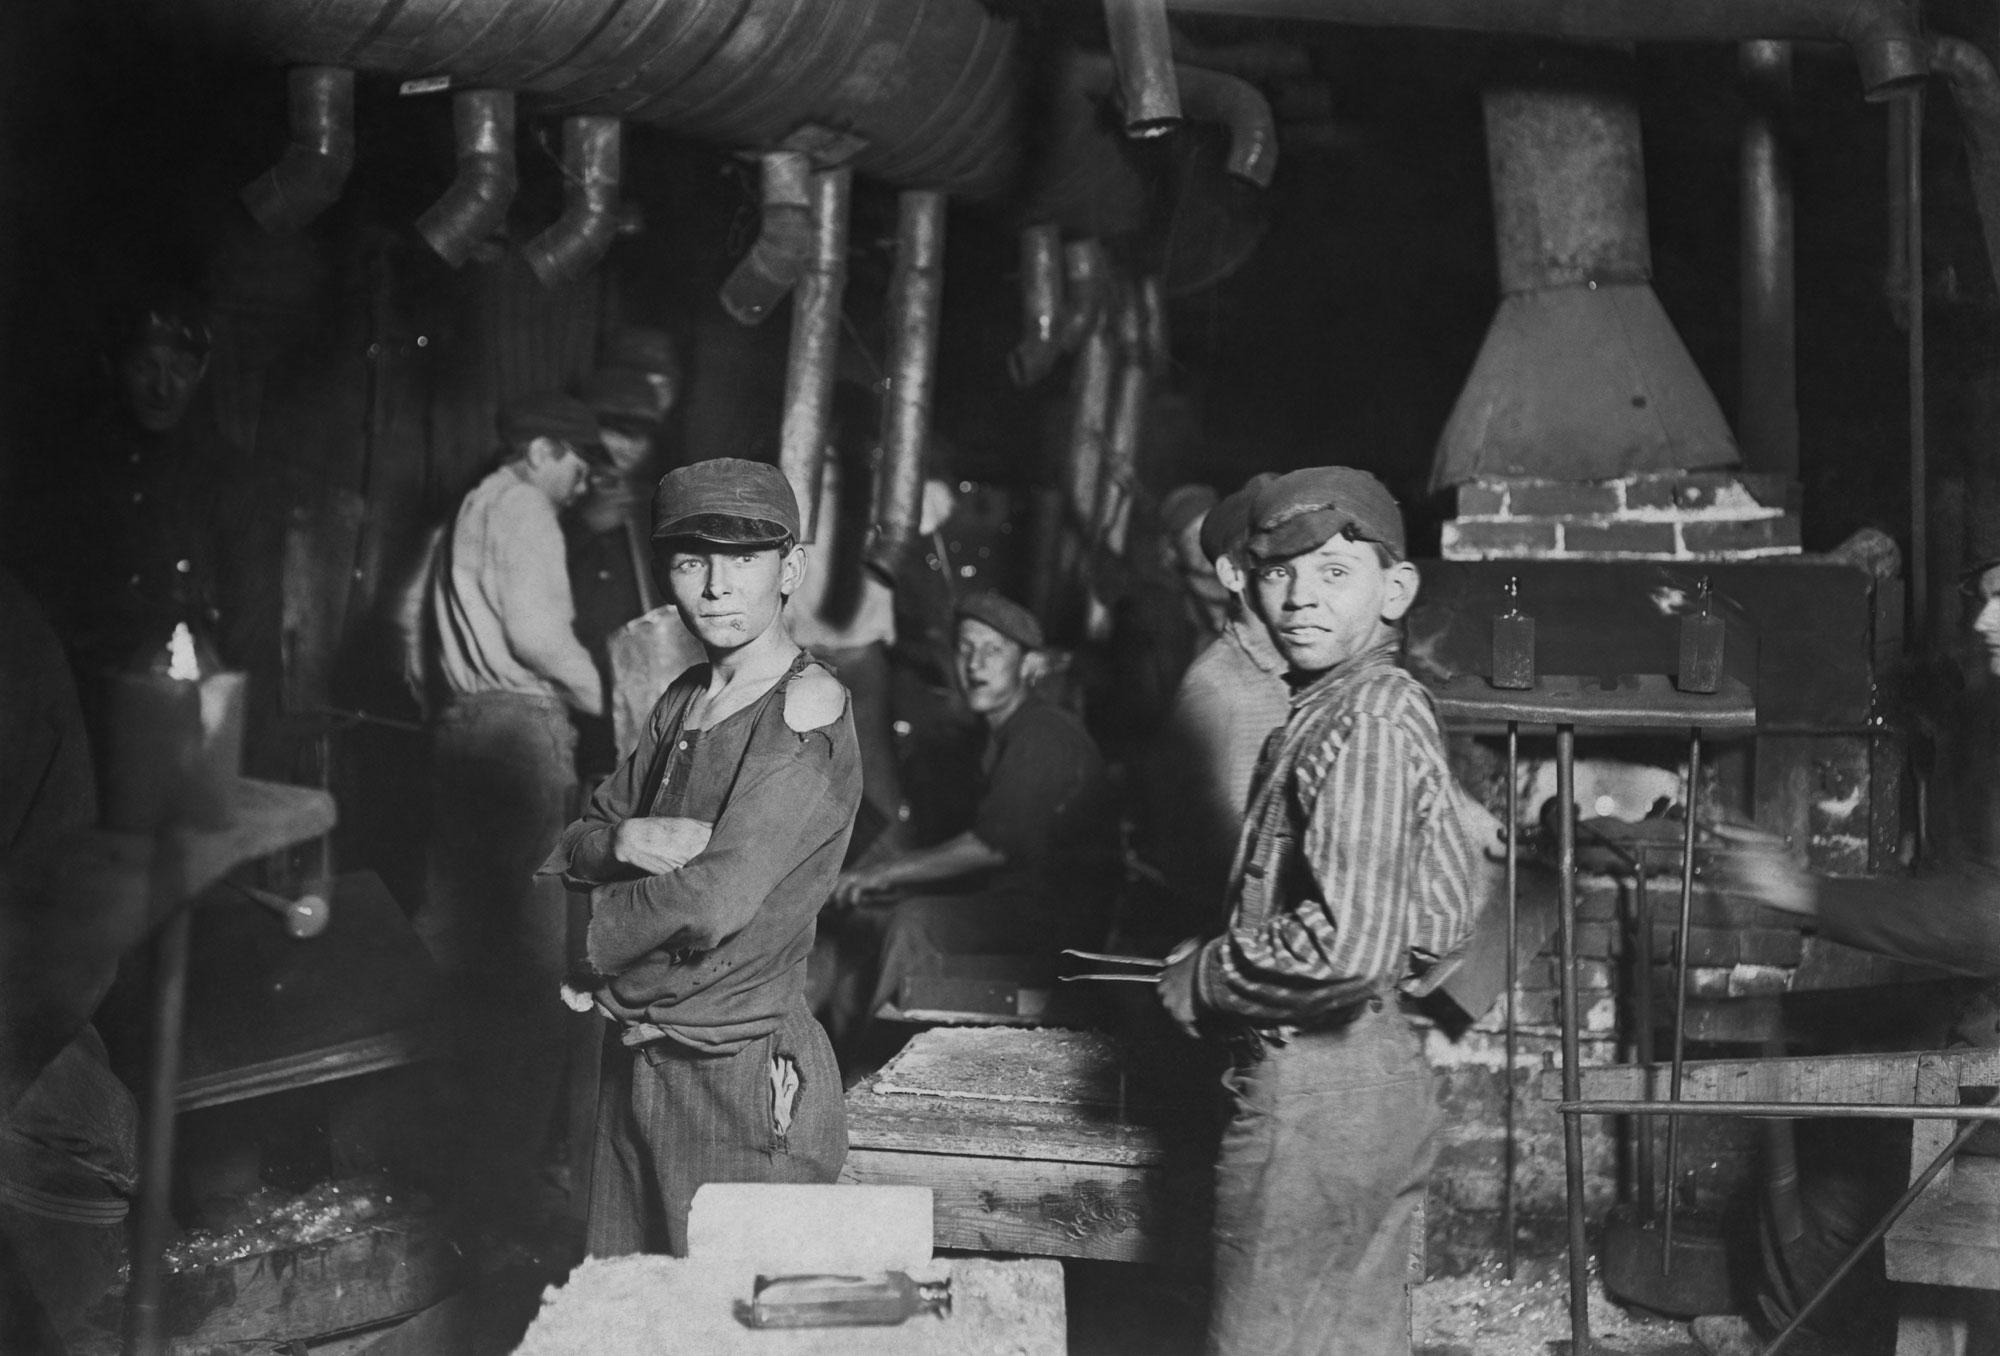 the development of technology and its effects on organized labor in america between 1875 and 1900 How successful was organized labor in improving the position of workers in the period from 1875 to 1900 influenced the development of democracy between.